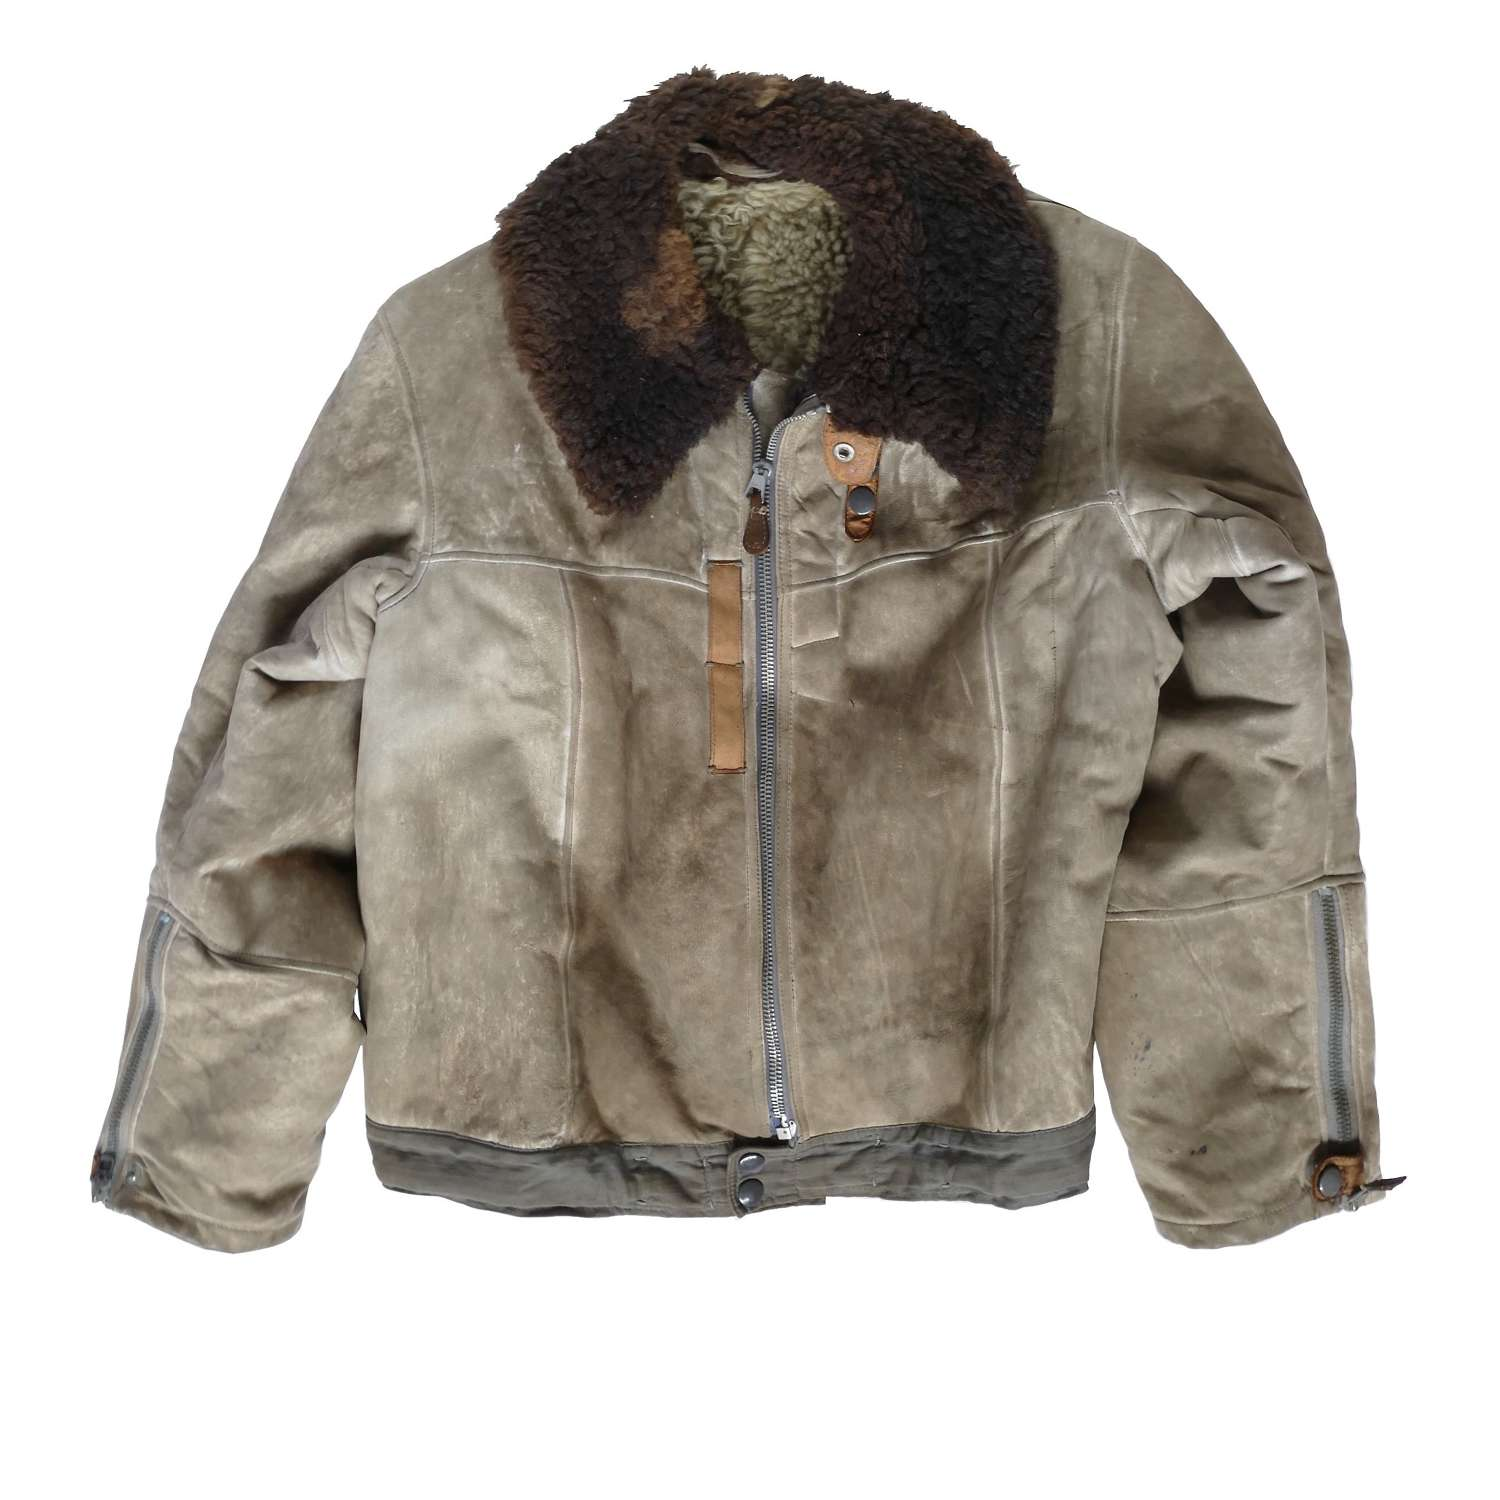 Luftwaffe suede 'channel' flying jacket